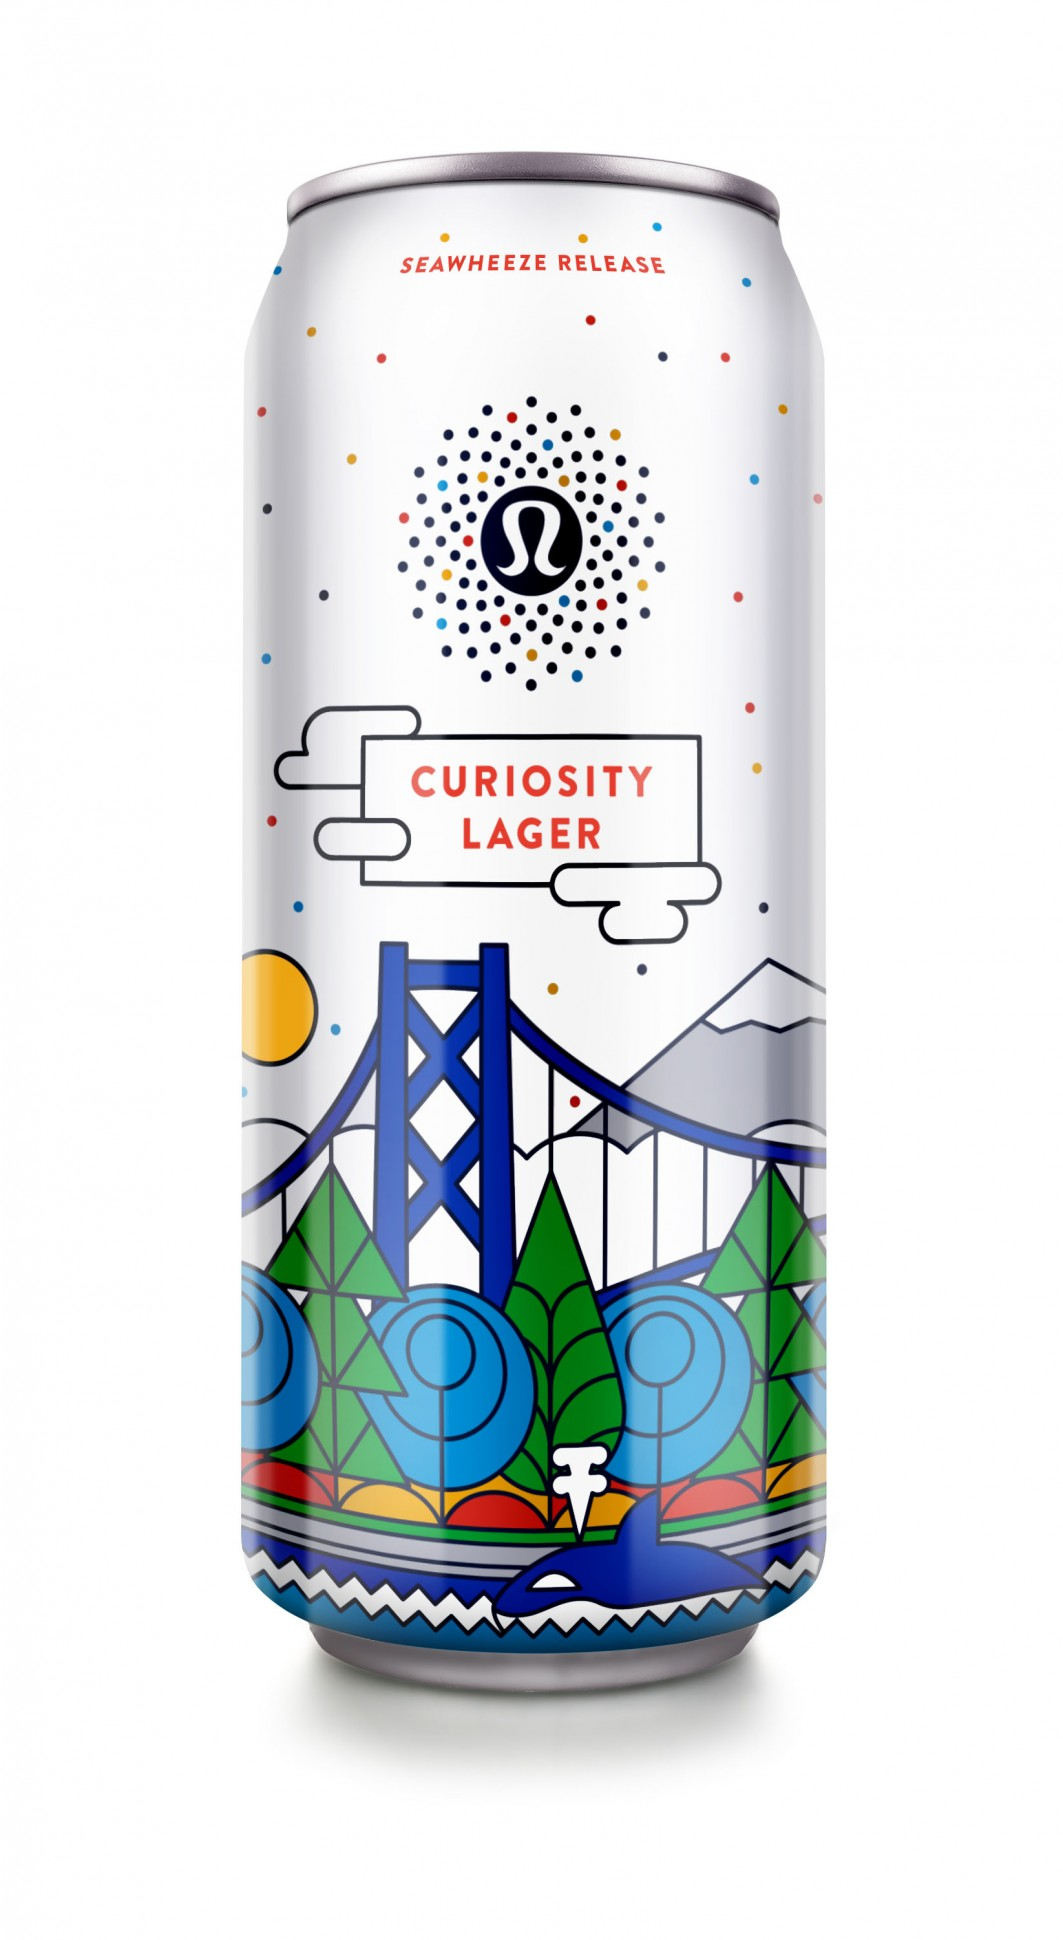 Curiosity-Lager-yoga beer lululemon packaging design